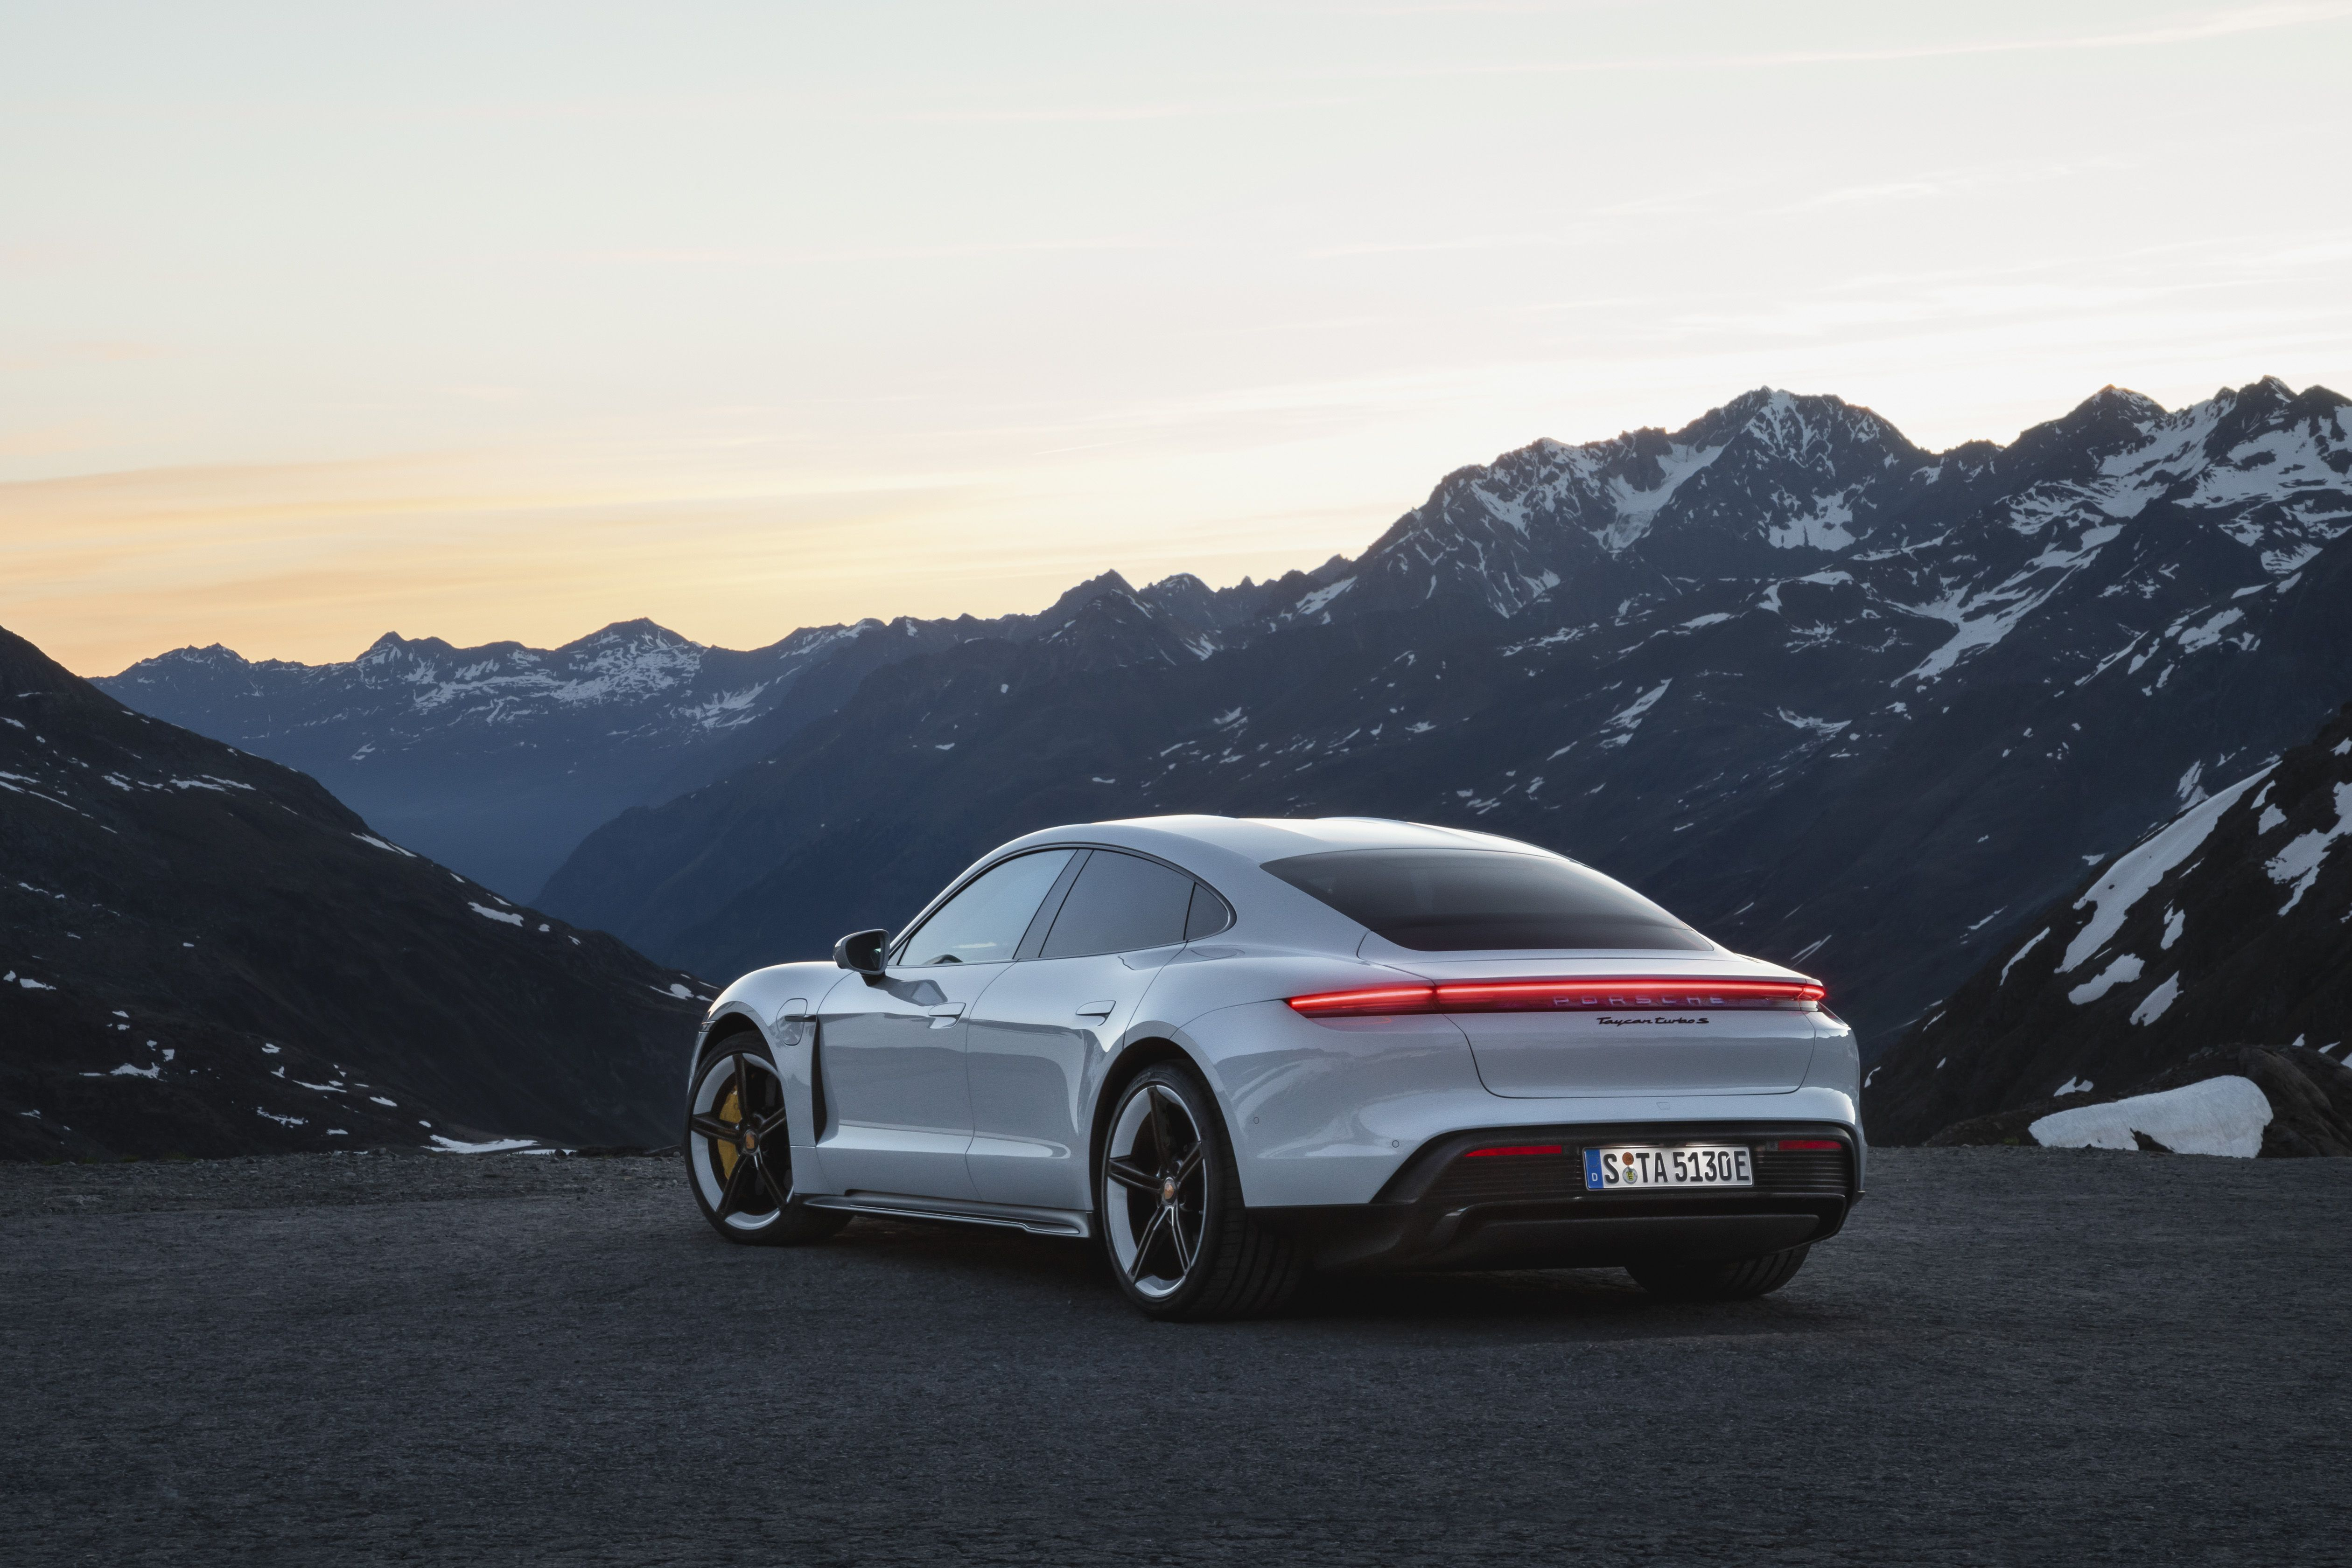 Porsche Taycan Turbo S Gets an Abysmal 192-Mile Range Rating by the EPA